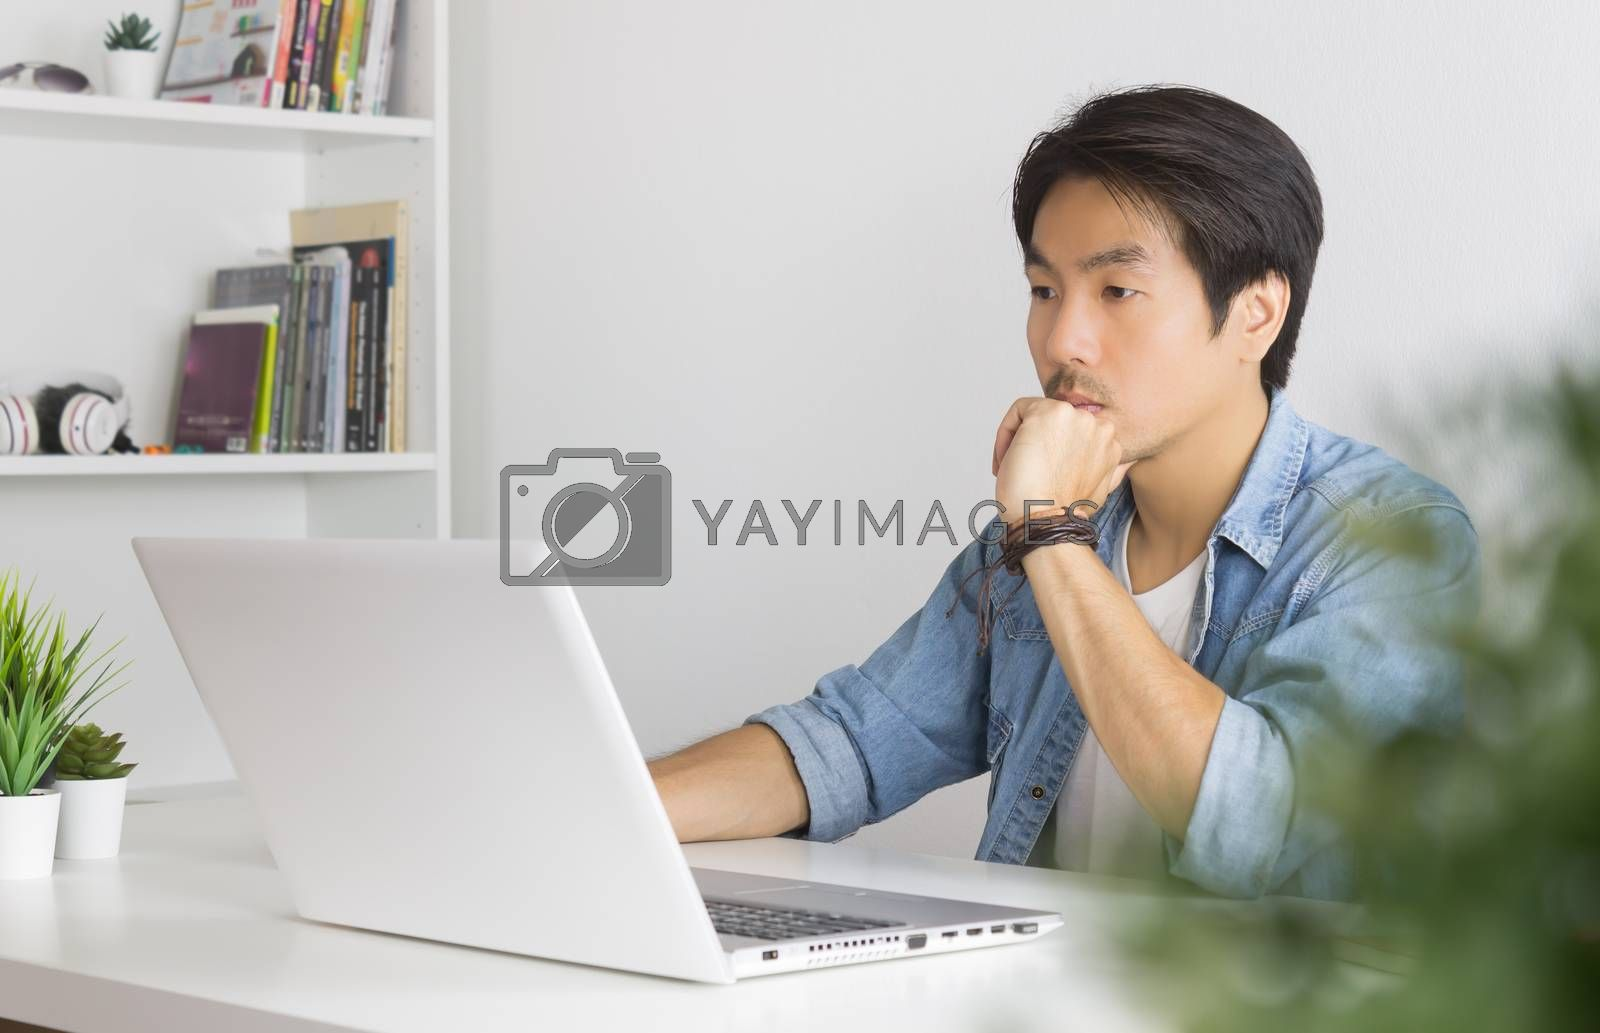 Portrait Asian Casual Businessman in Denim or Jeans Shirt Use Laptop and Thinking and Serious Pose in Home Office. Casual businessman working with technology